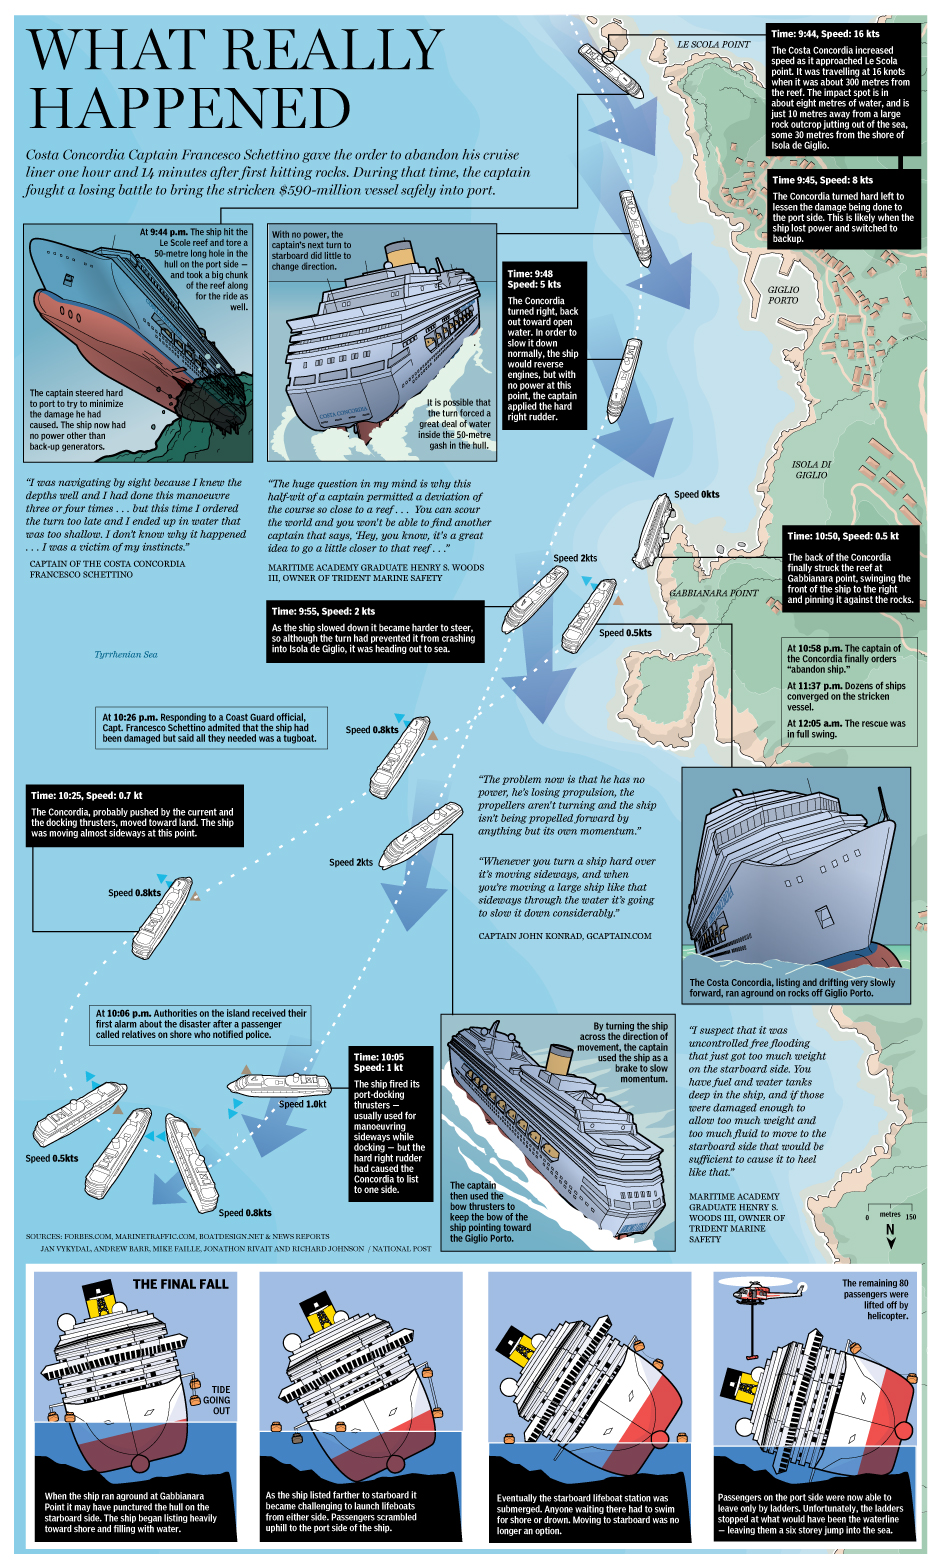 Rms Titanic 2 Who Is The Villain In The Costa Concordia